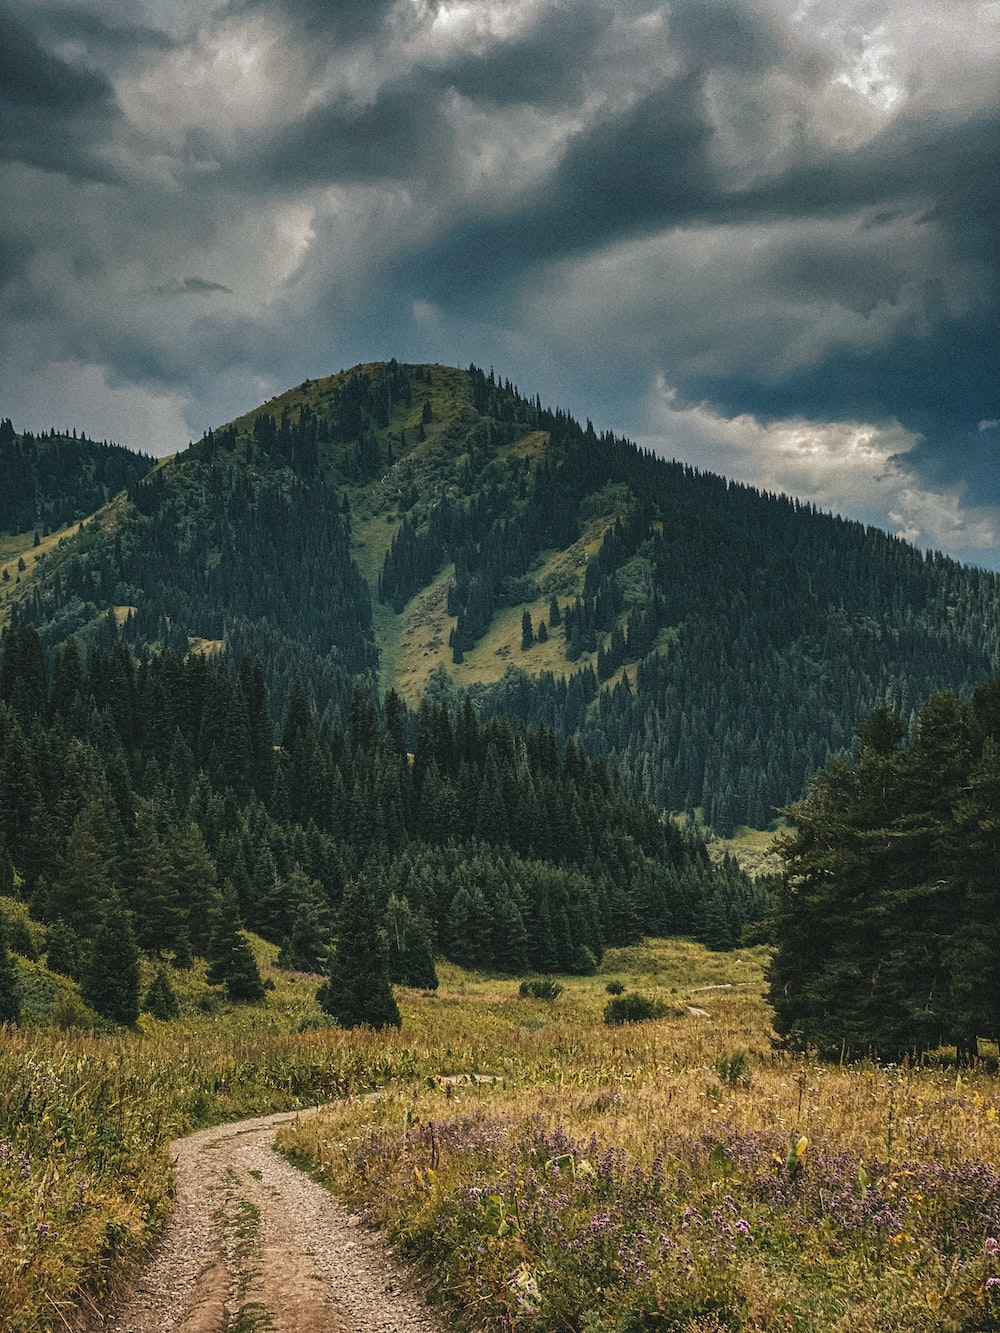 green trees on brown grass field near mountain under cloudy sky during daytime